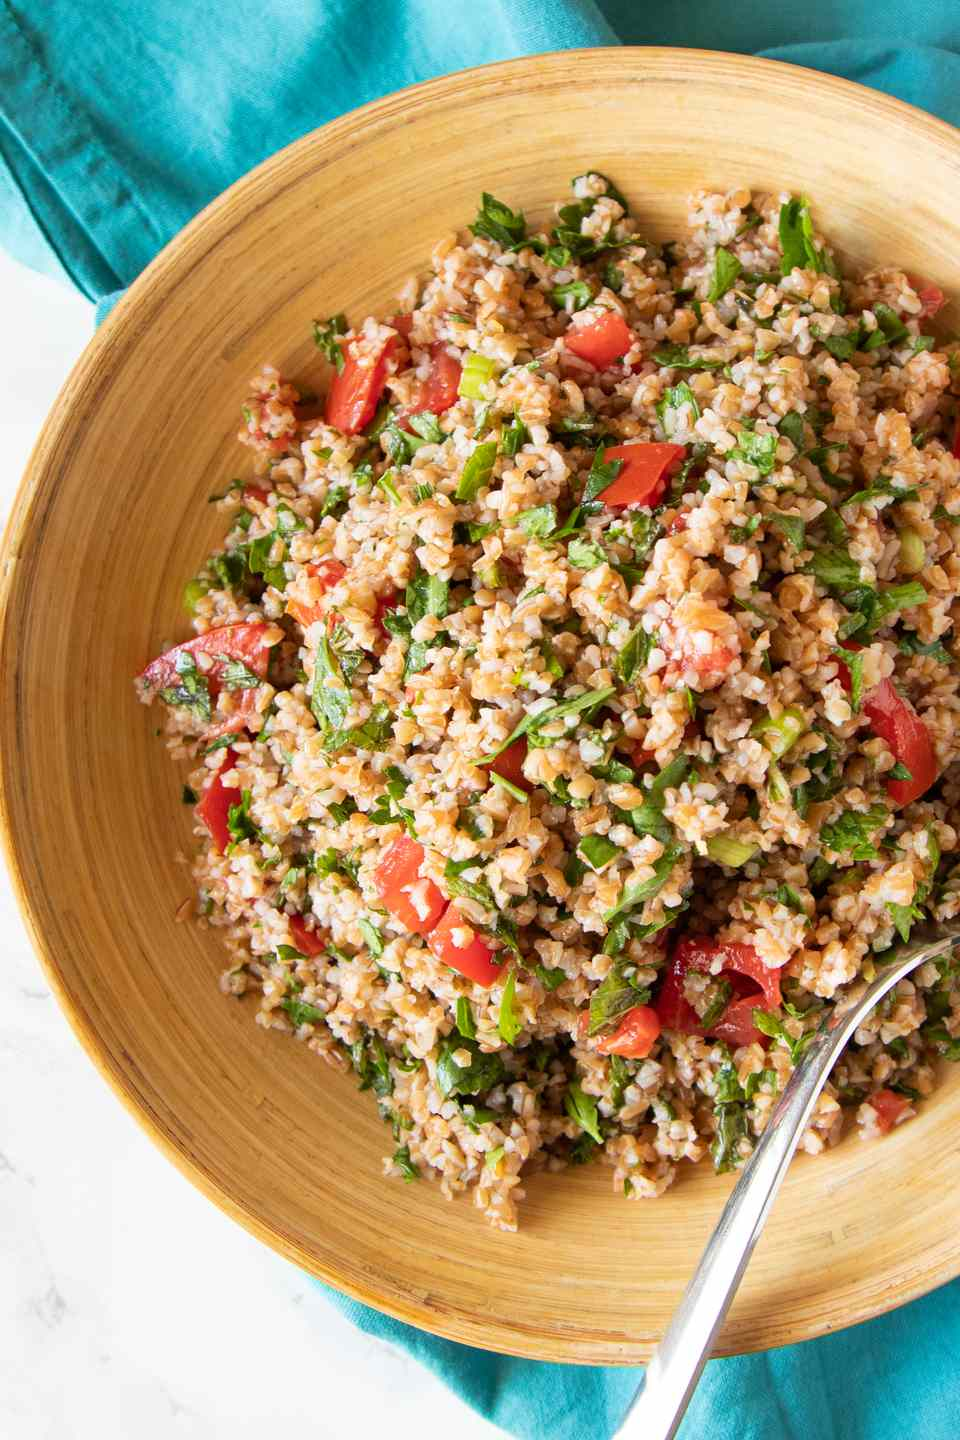 Tan bowl with tabbouleh and a spoon.